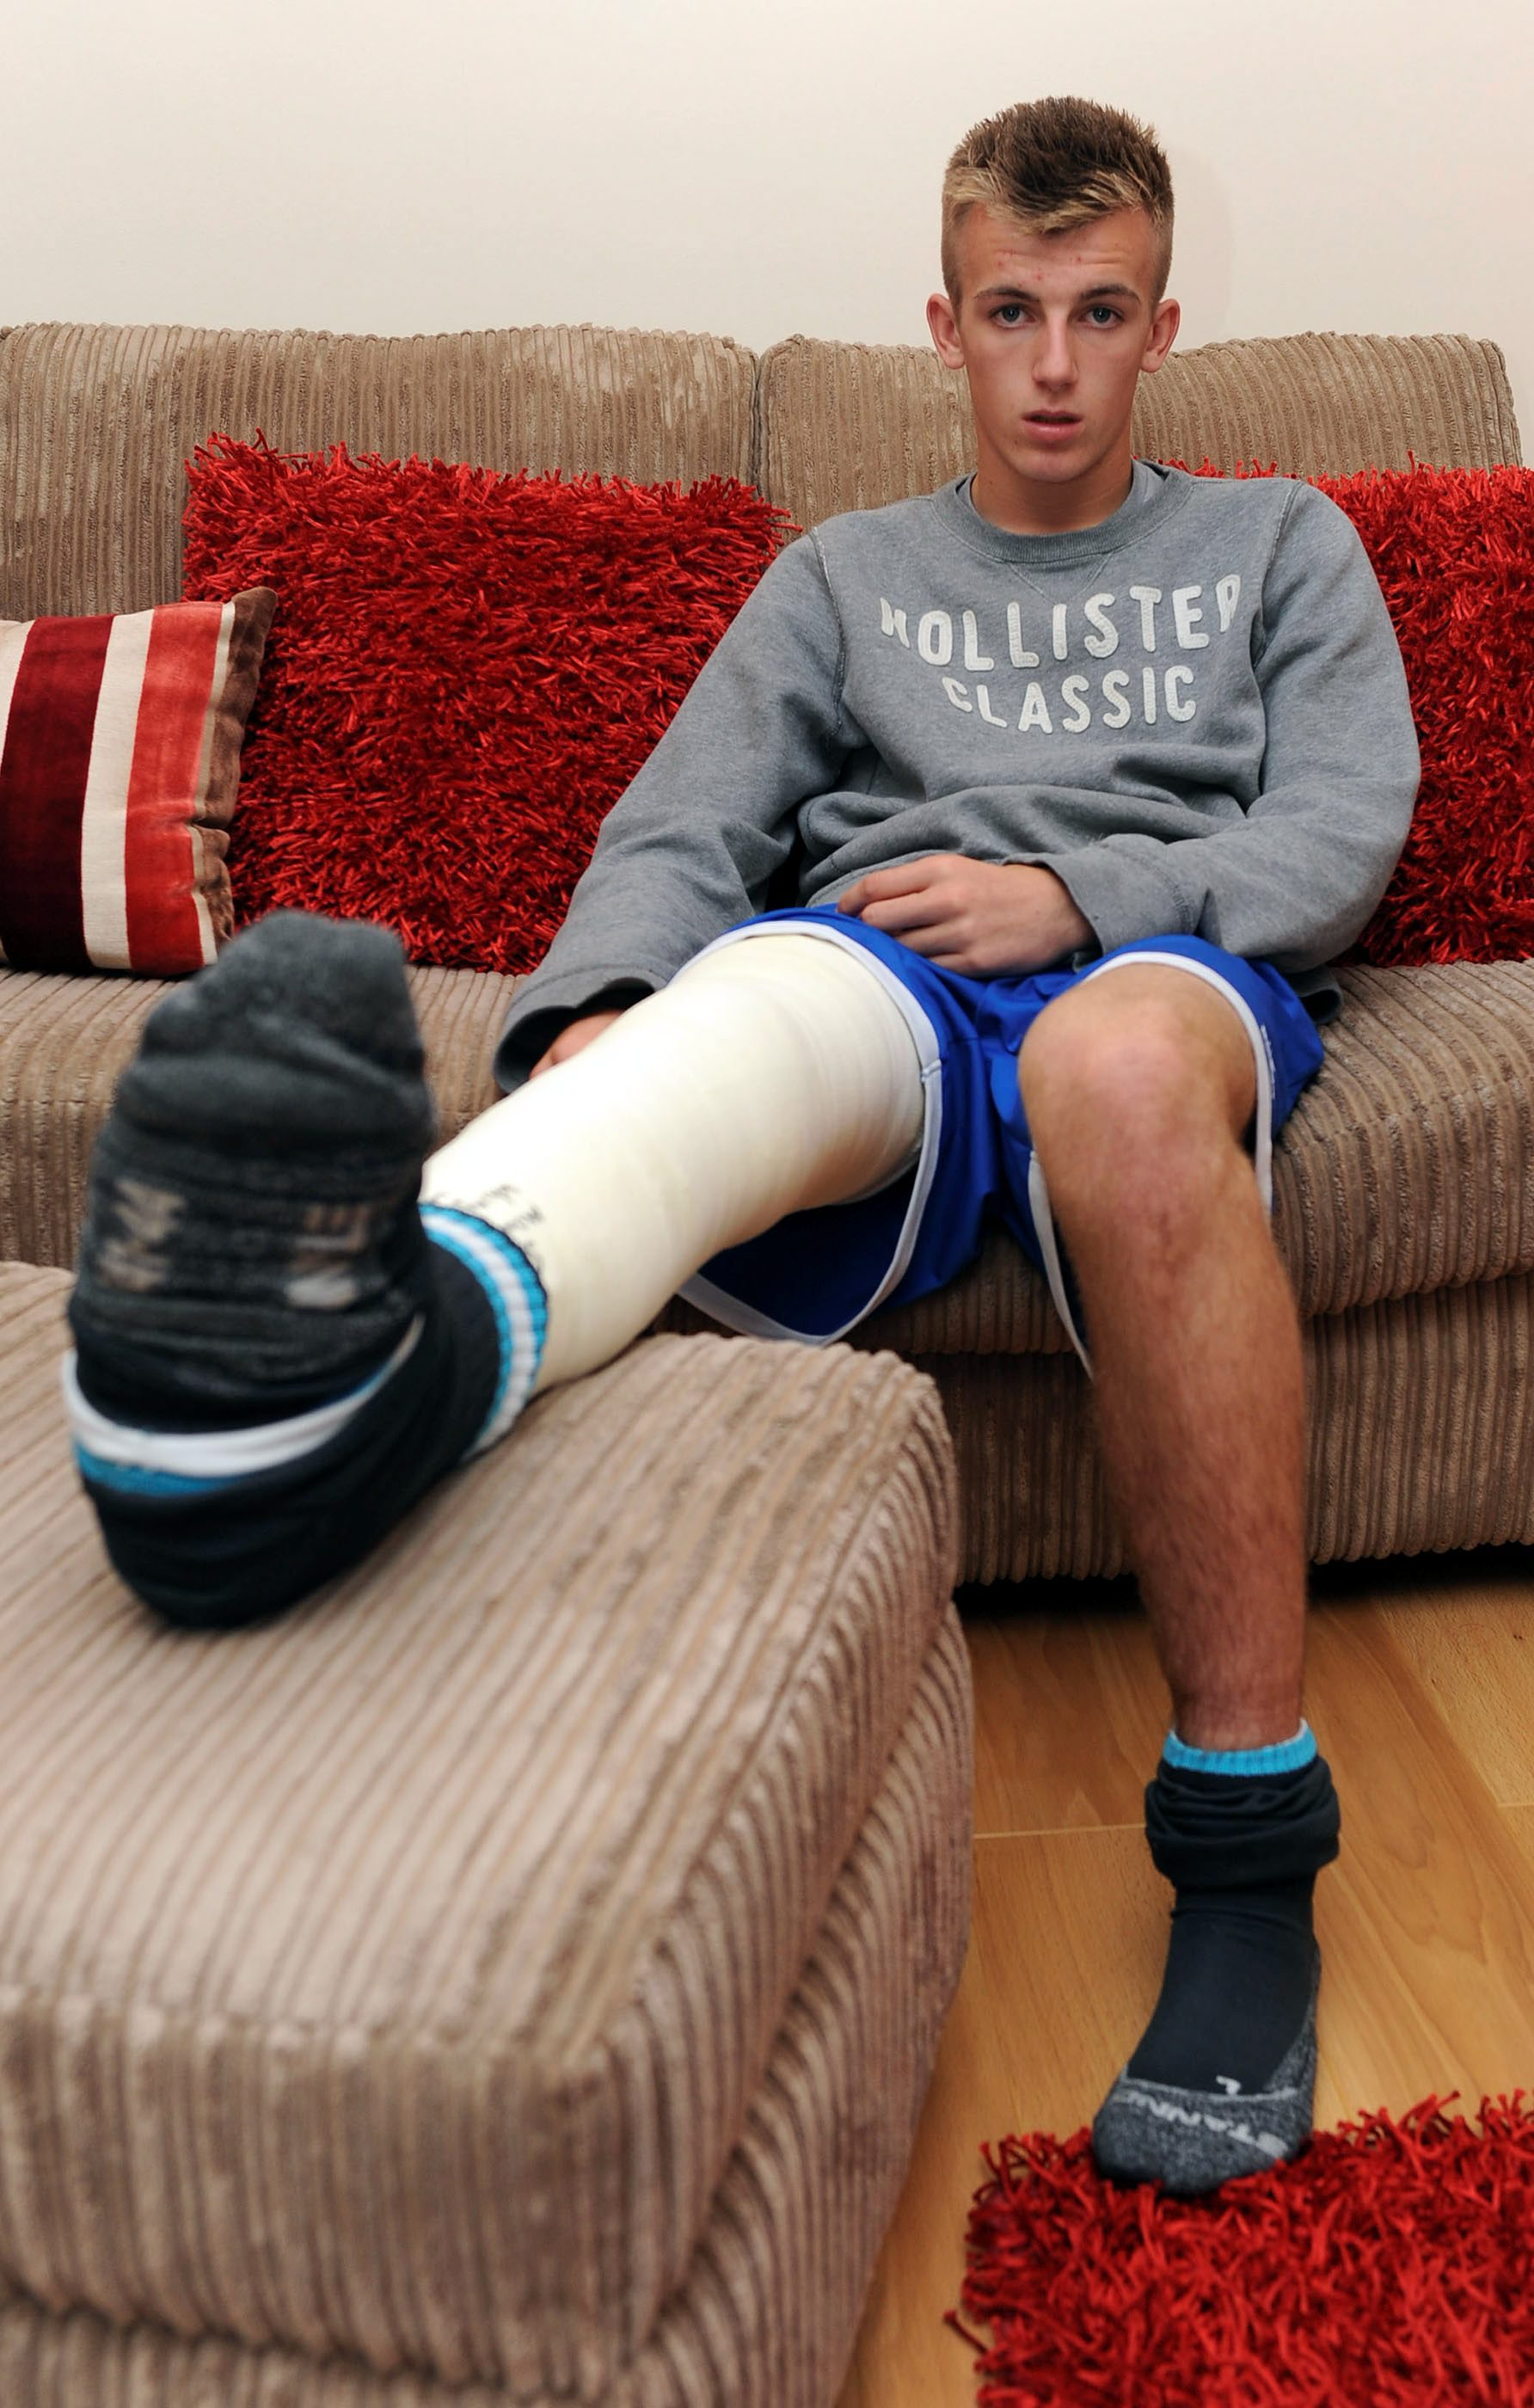 Referee facing disciplinary action after making fun of teenager who broke leg during match